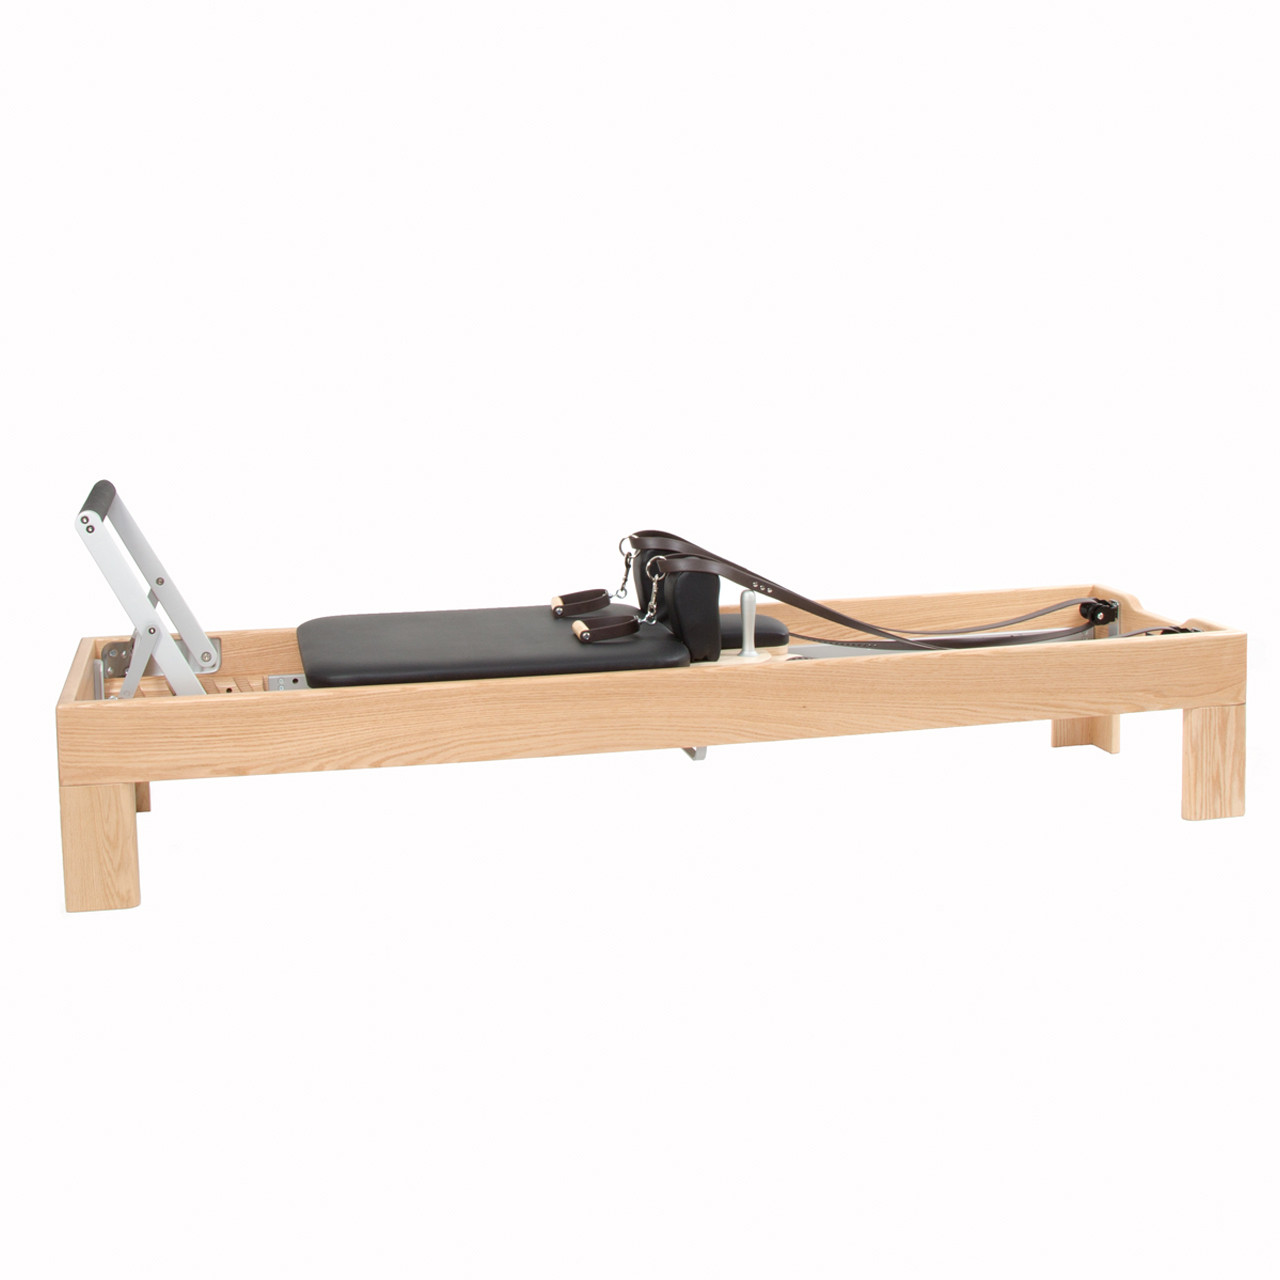 Artistry™ Reformer with Vegan Straps Refurbished, Oak